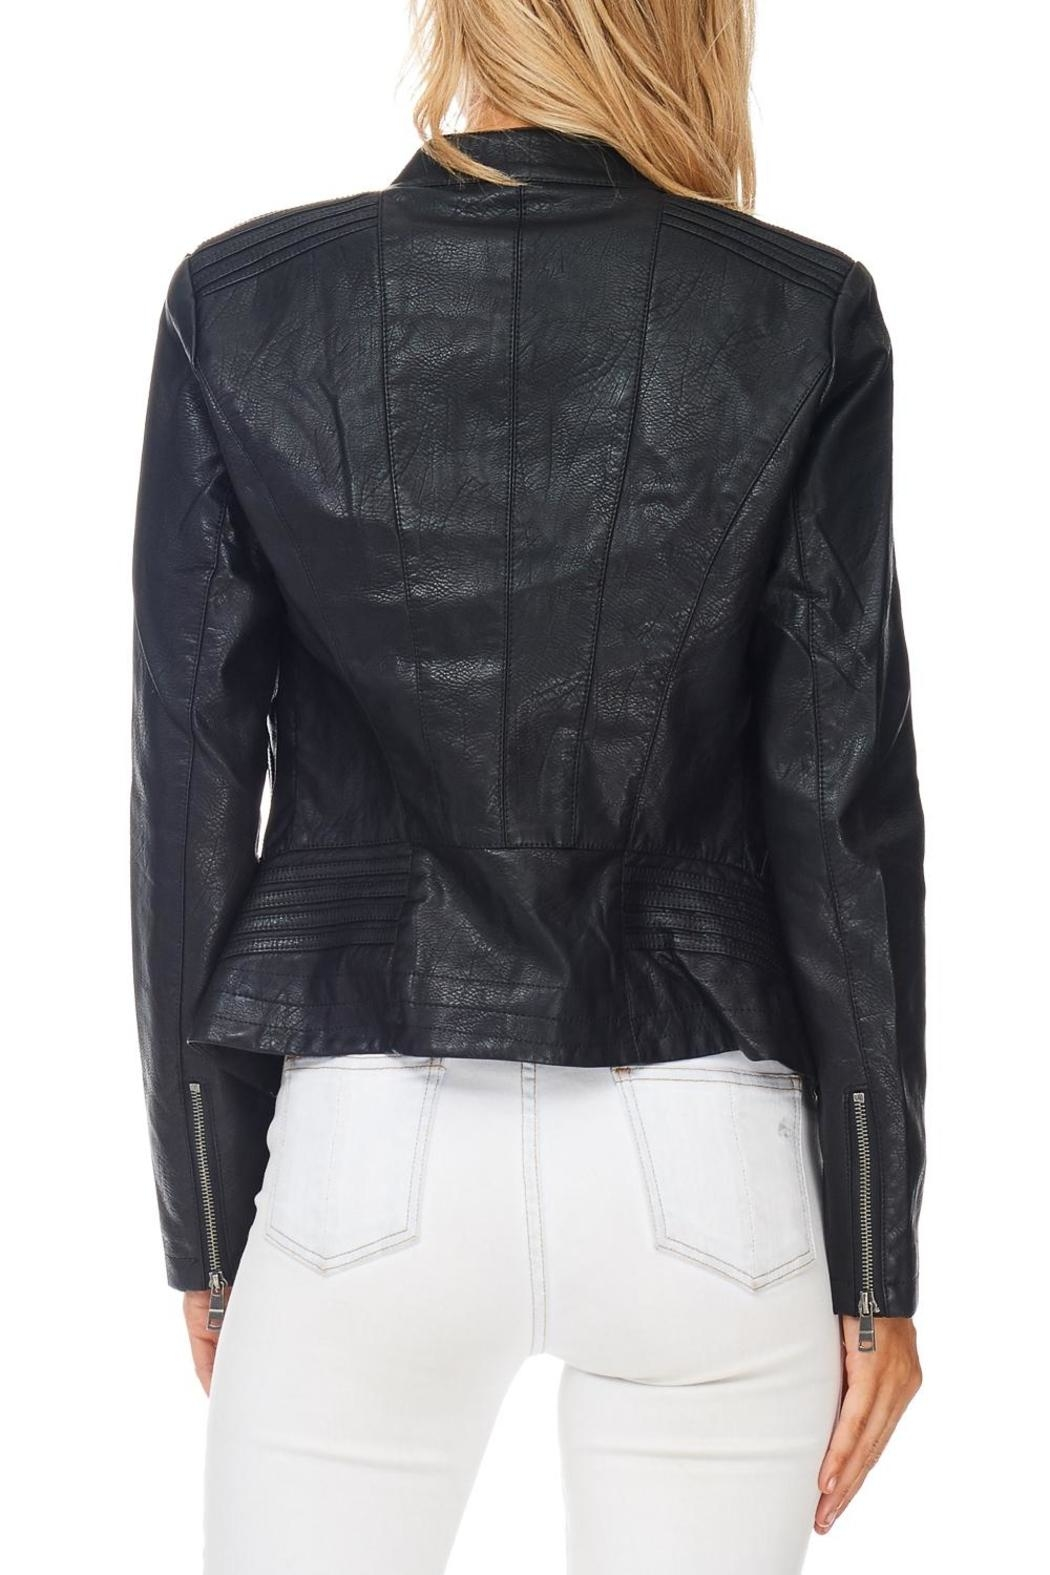 Coalition Black Vegan Leather Jacket - Side Cropped Image